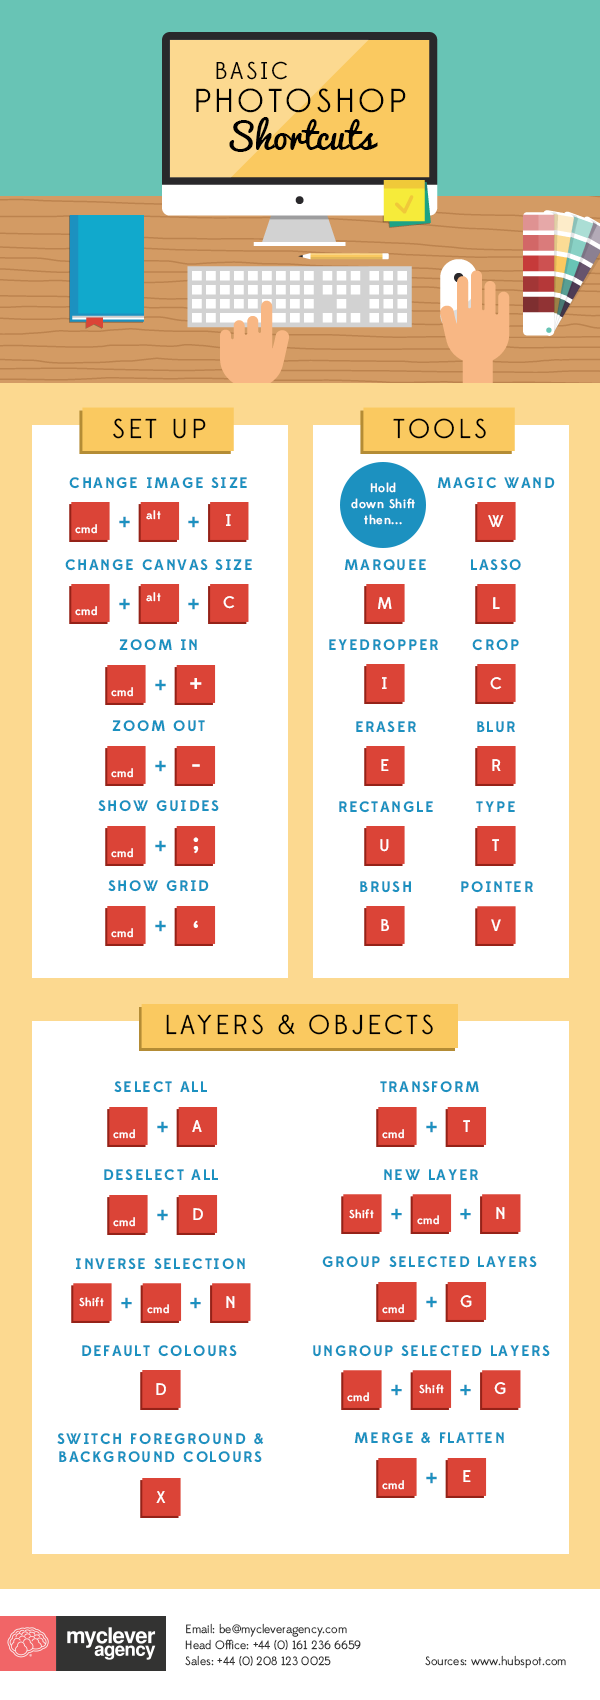 Basic #Photoshop Shortcuts #infographic